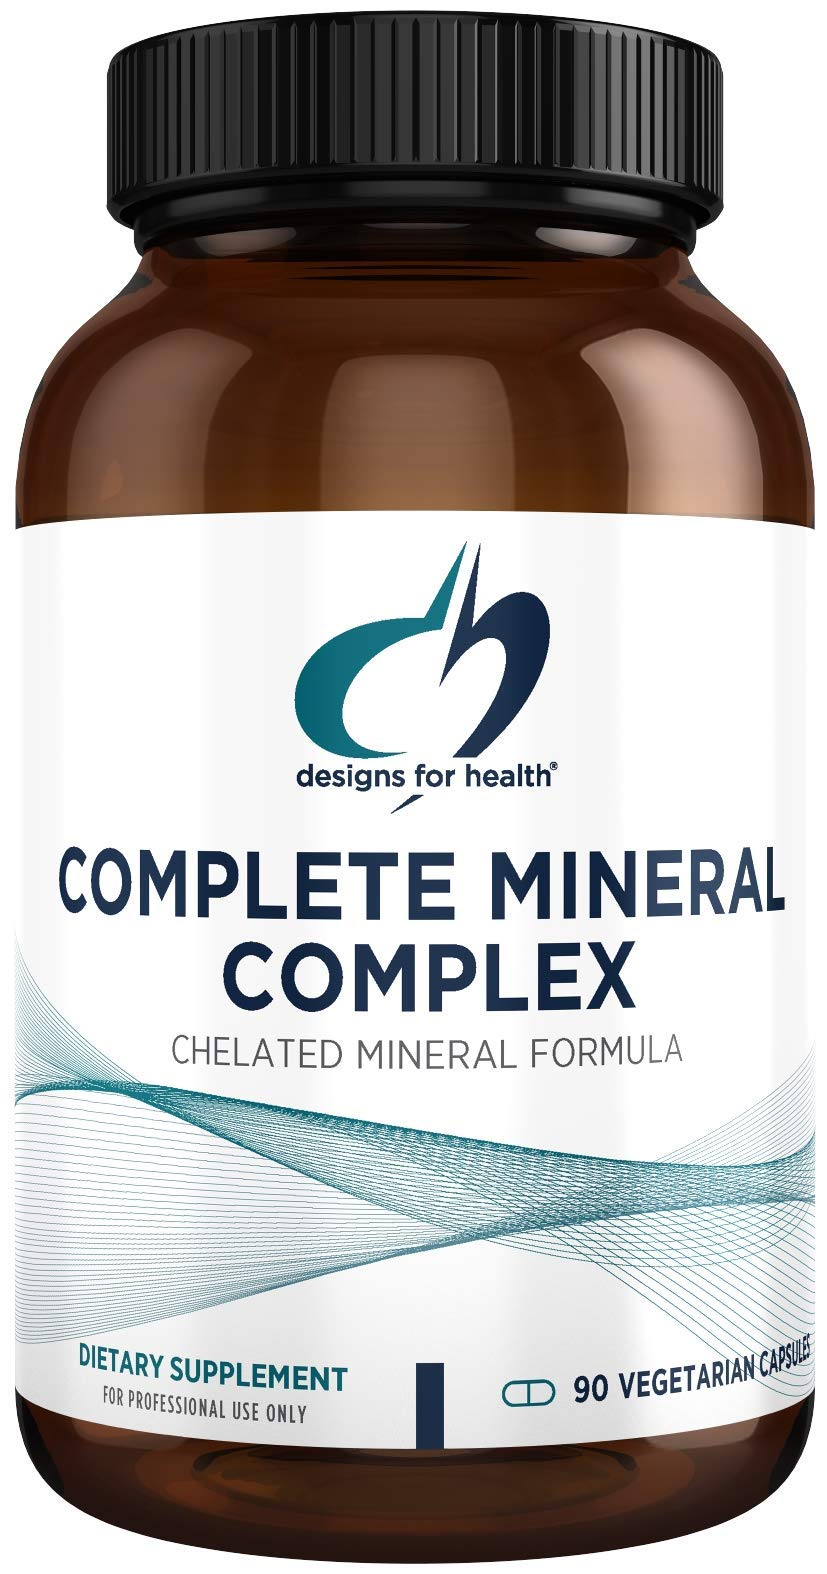 Designs for Health Complete Mineral Complex - Iron Free Multi Mineral Supplement, Chelated Minerals for Superior Absorption - Magnesium Malate, Zinc, Chromium, Selenium + More - Non-GMO (90 Capsules)